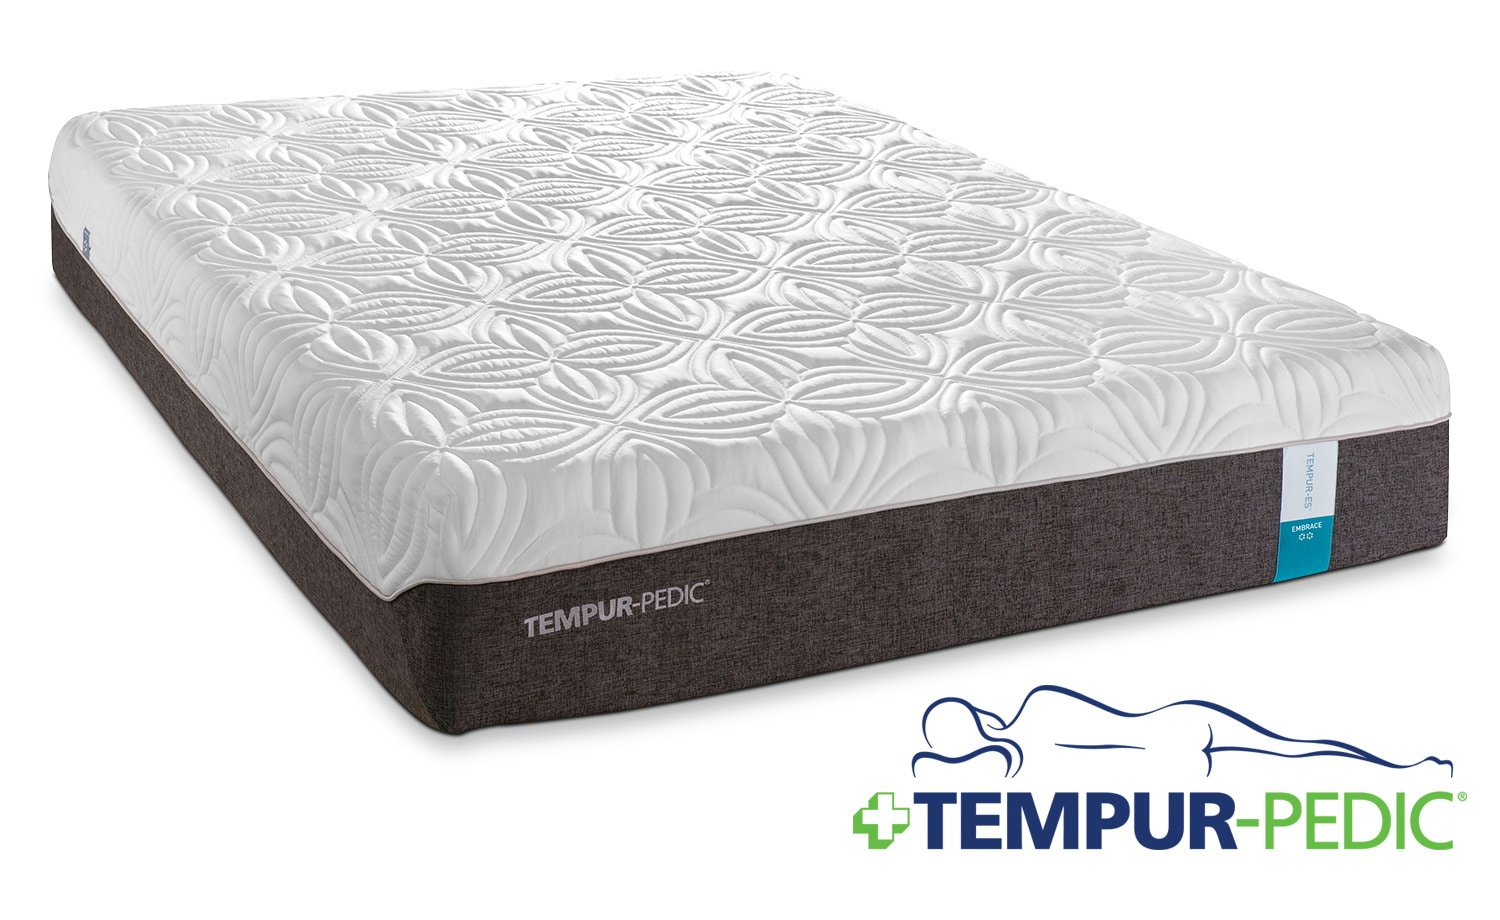 Tempur-Pedic Embrace 2.0 Plush Full Mattress